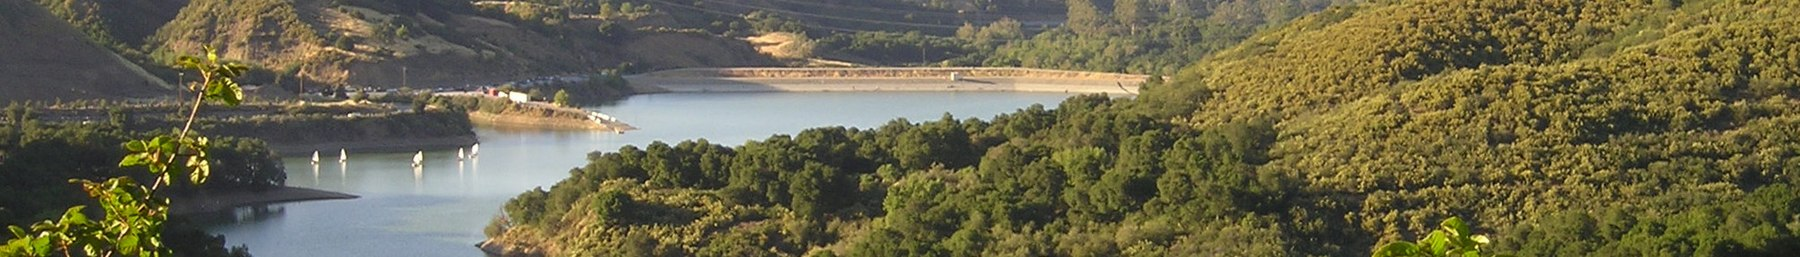 StevensCreekReservoir (cropped).jpg